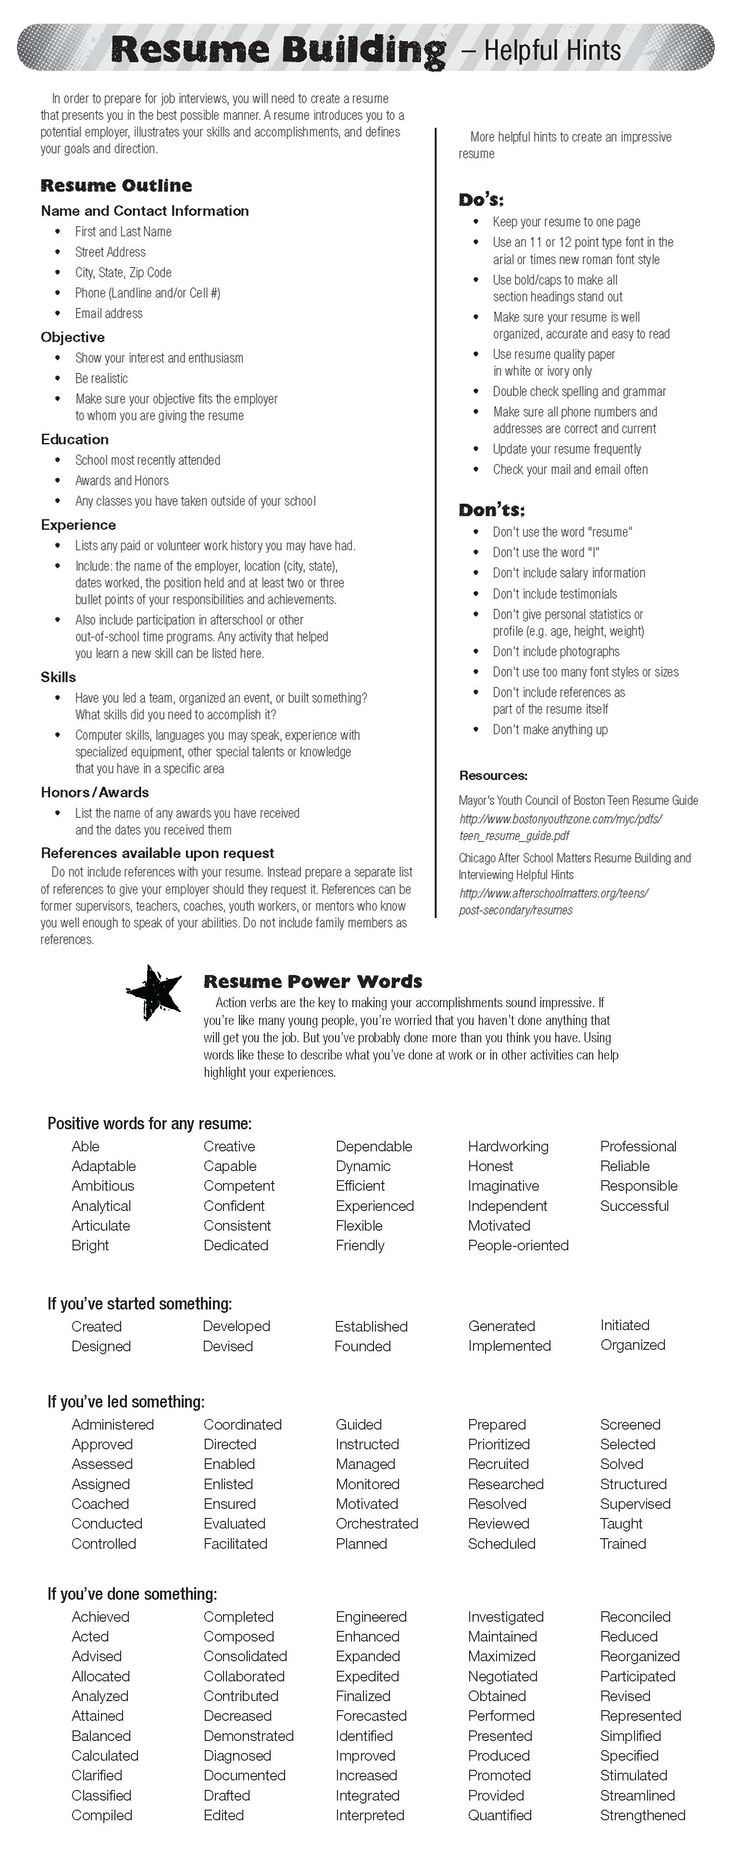 Opposenewapstandardsus  Personable  Ideas About Resume On Pinterest  Cv Format Resume Cv And  With Marvelous  Ideas About Resume On Pinterest  Cv Format Resume Cv And Resume Templates With Adorable Receptionist Resume Example Also Ceo Resume Template In Addition Fitness Trainer Resume And Recent College Grad Resume As Well As Medical Field Resume Additionally New Grad Rn Resume Examples From Pinterestcom With Opposenewapstandardsus  Marvelous  Ideas About Resume On Pinterest  Cv Format Resume Cv And  With Adorable  Ideas About Resume On Pinterest  Cv Format Resume Cv And Resume Templates And Personable Receptionist Resume Example Also Ceo Resume Template In Addition Fitness Trainer Resume From Pinterestcom